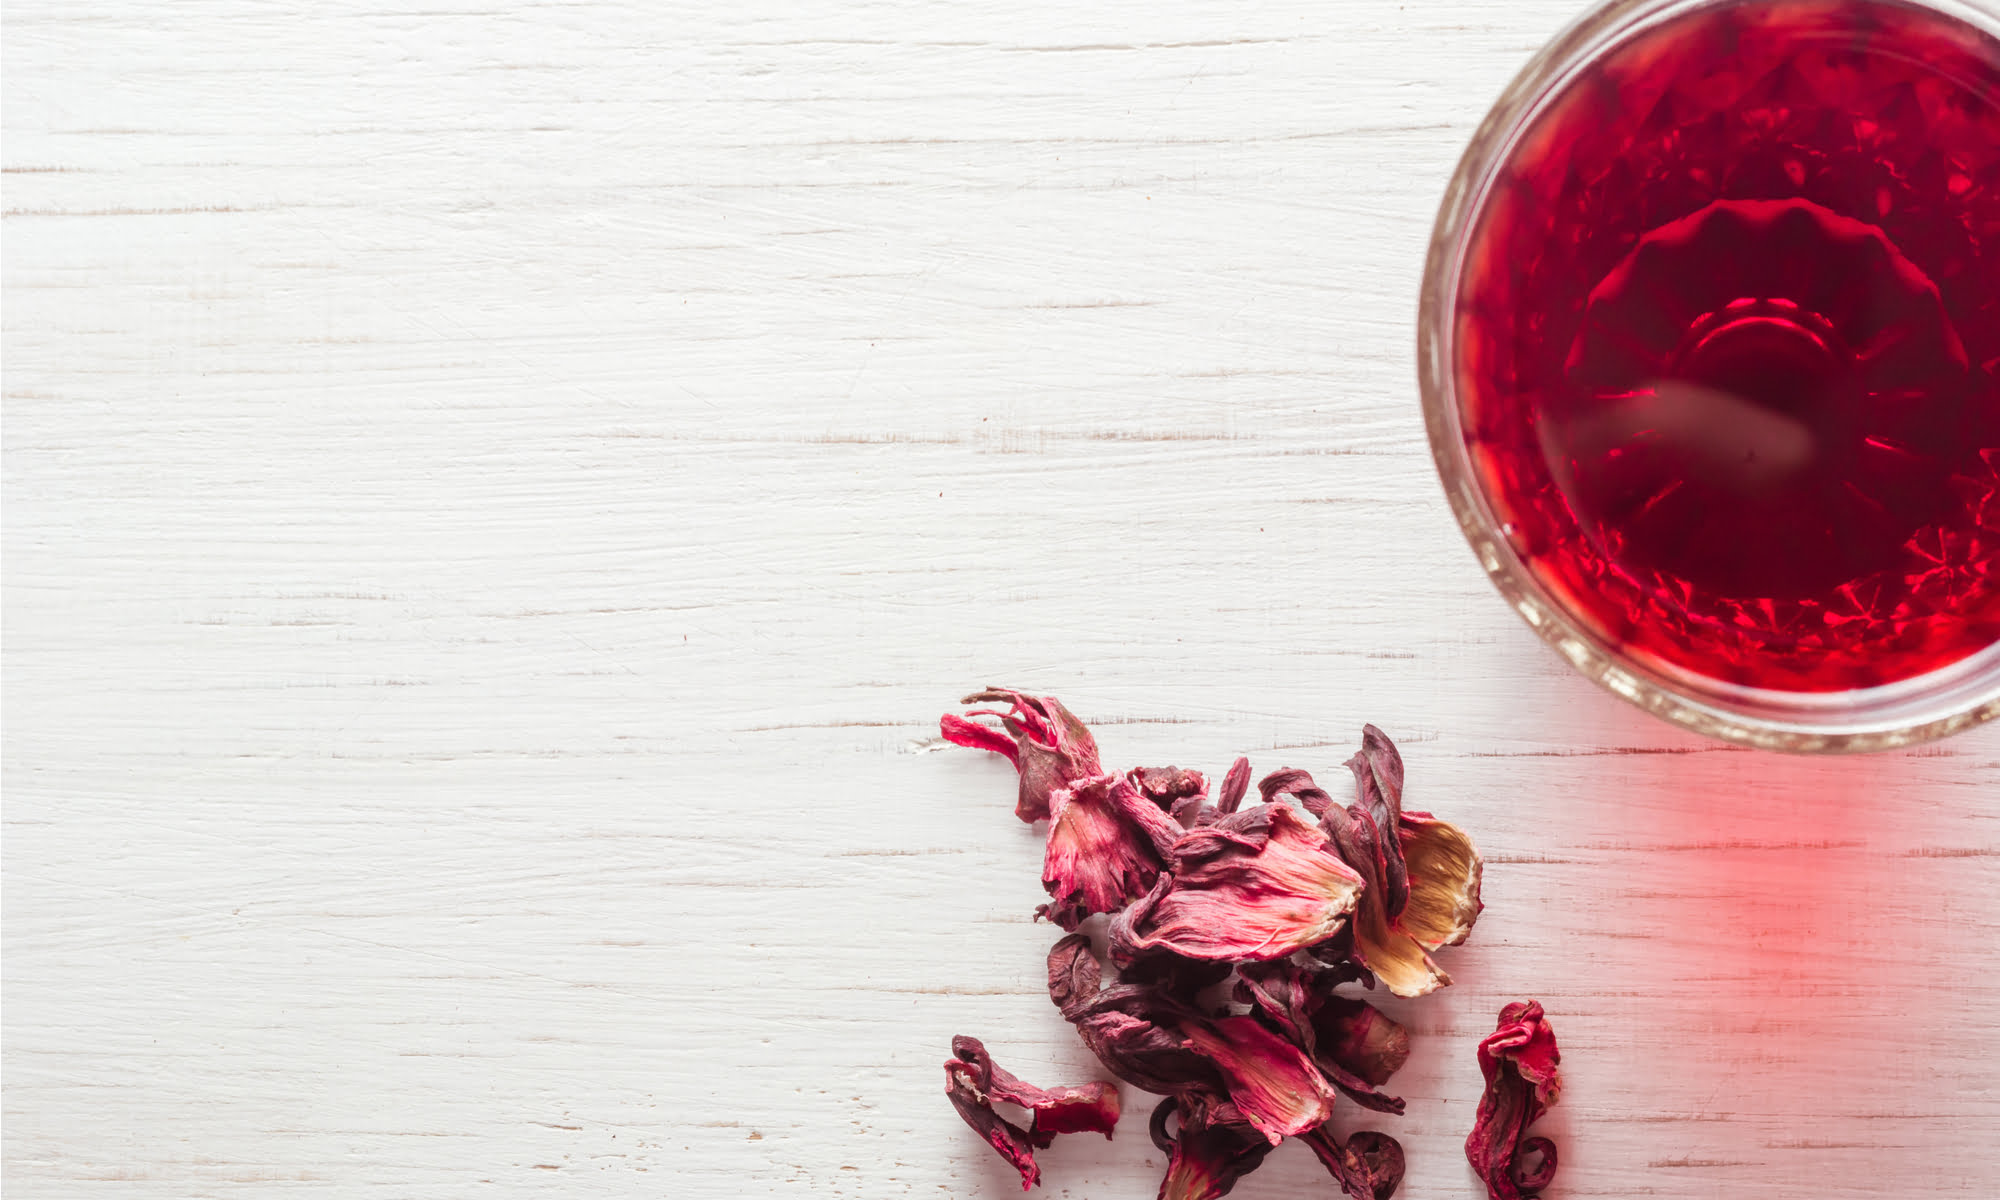 """HIBISCUS IS NOT JUST A FLOWER! SOME SAY IT'S THE """"NEW MATCHA"""""""